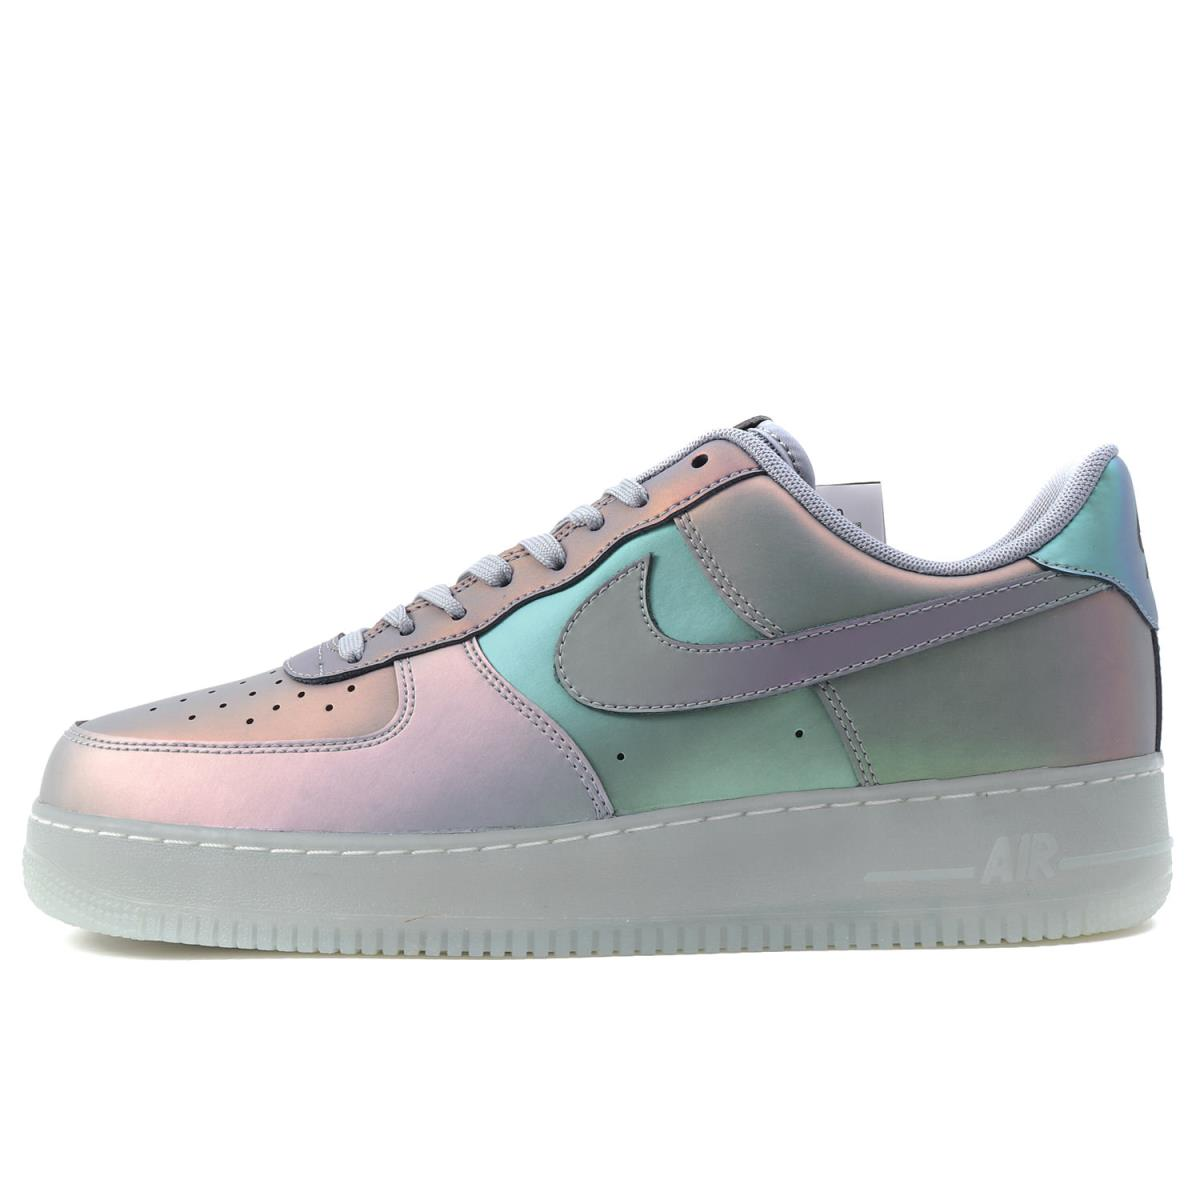 BEEGLE by Boo-Bee  NIKE (Nike) AIR FORCE 1  07 LV8 IRIDESCENT ... bd30530ac